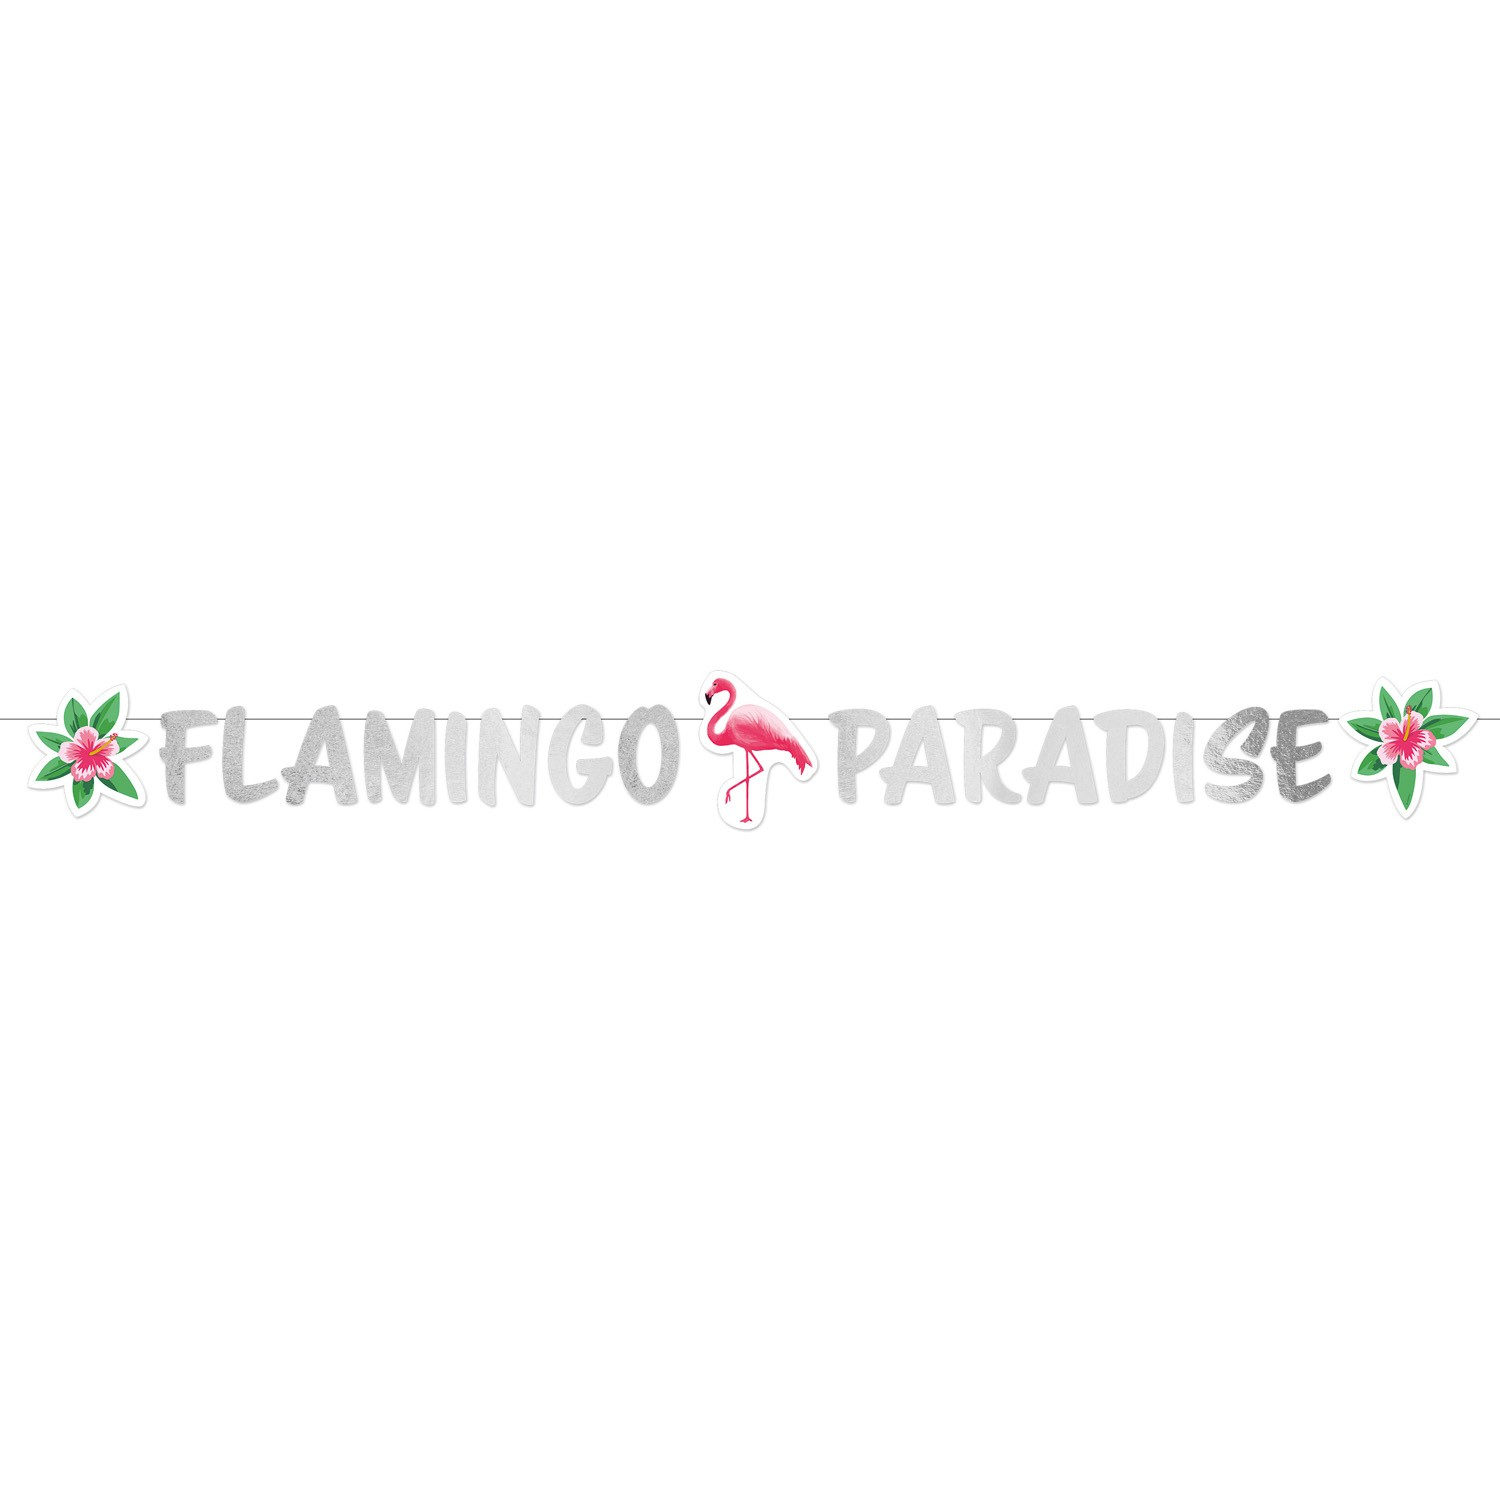 Flamingo Paradise – Greater flamingo garland